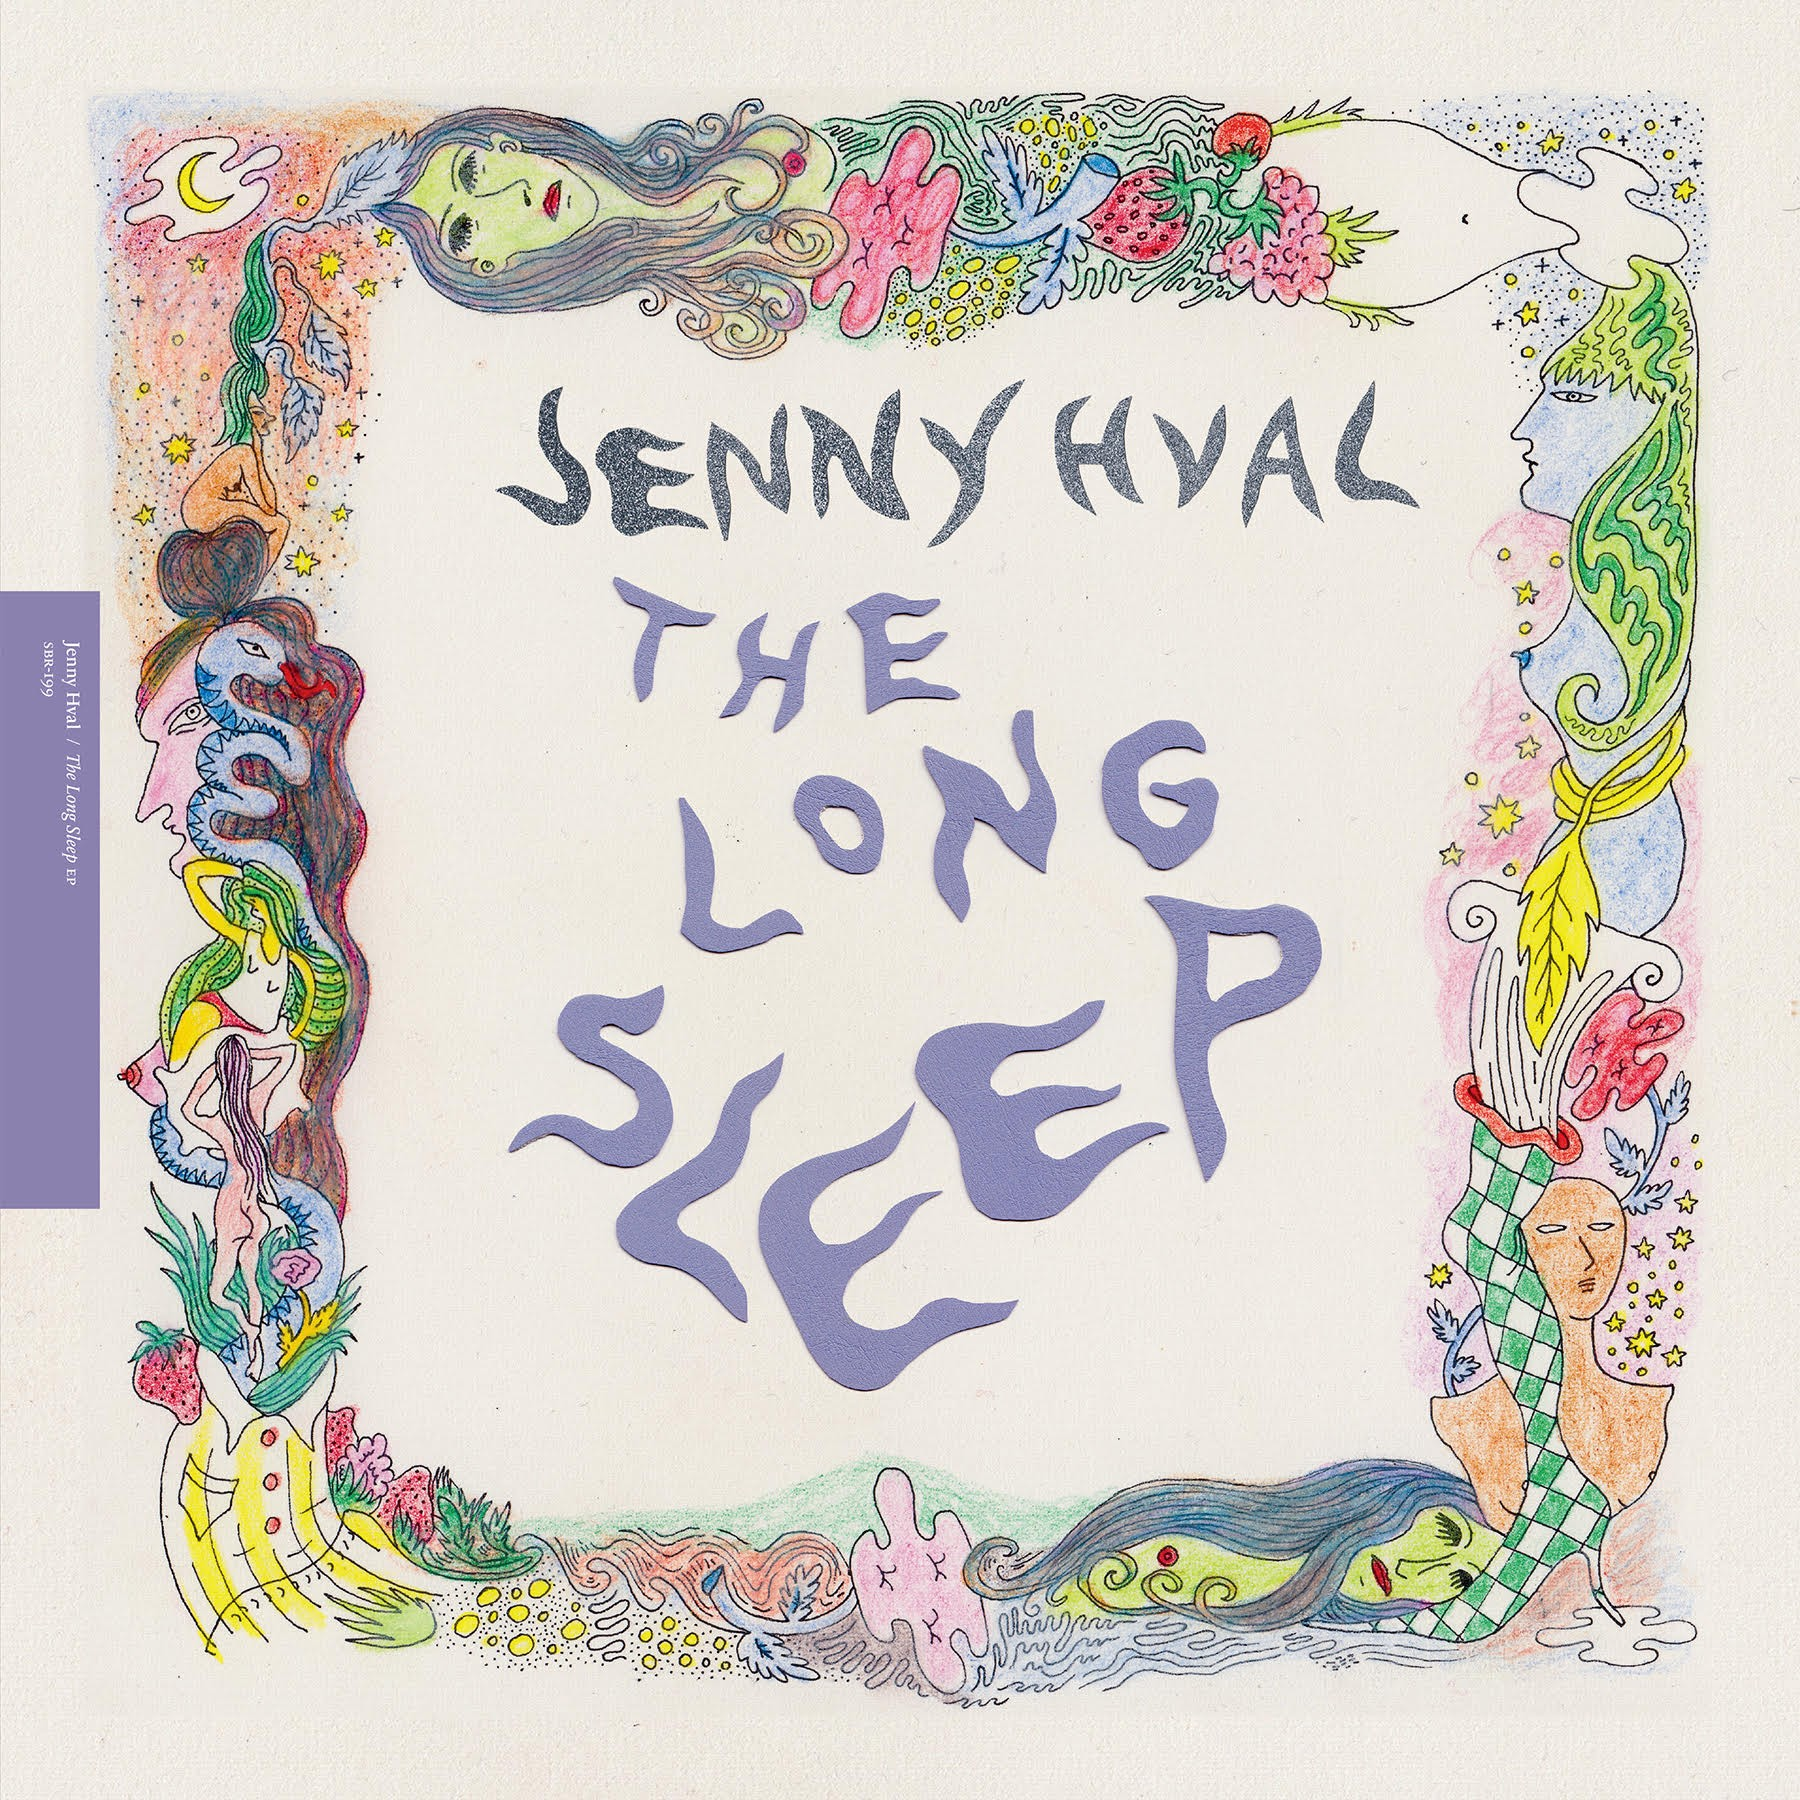 Jenny Hval The Long Sleep EP